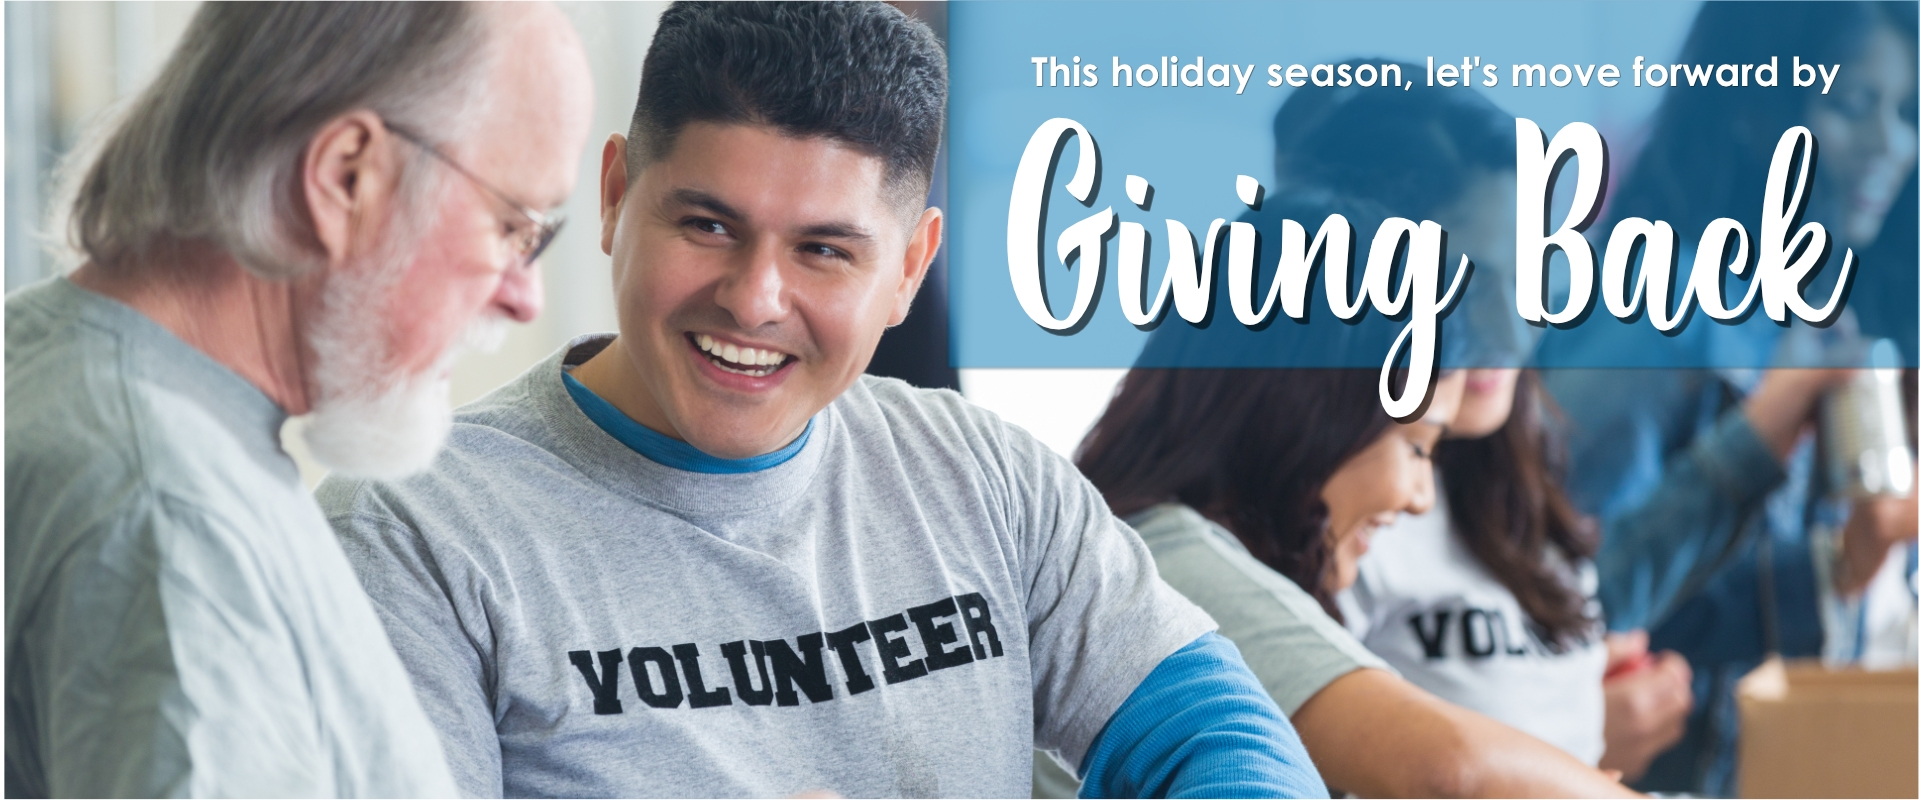 image of man volunteering and smiling Banner